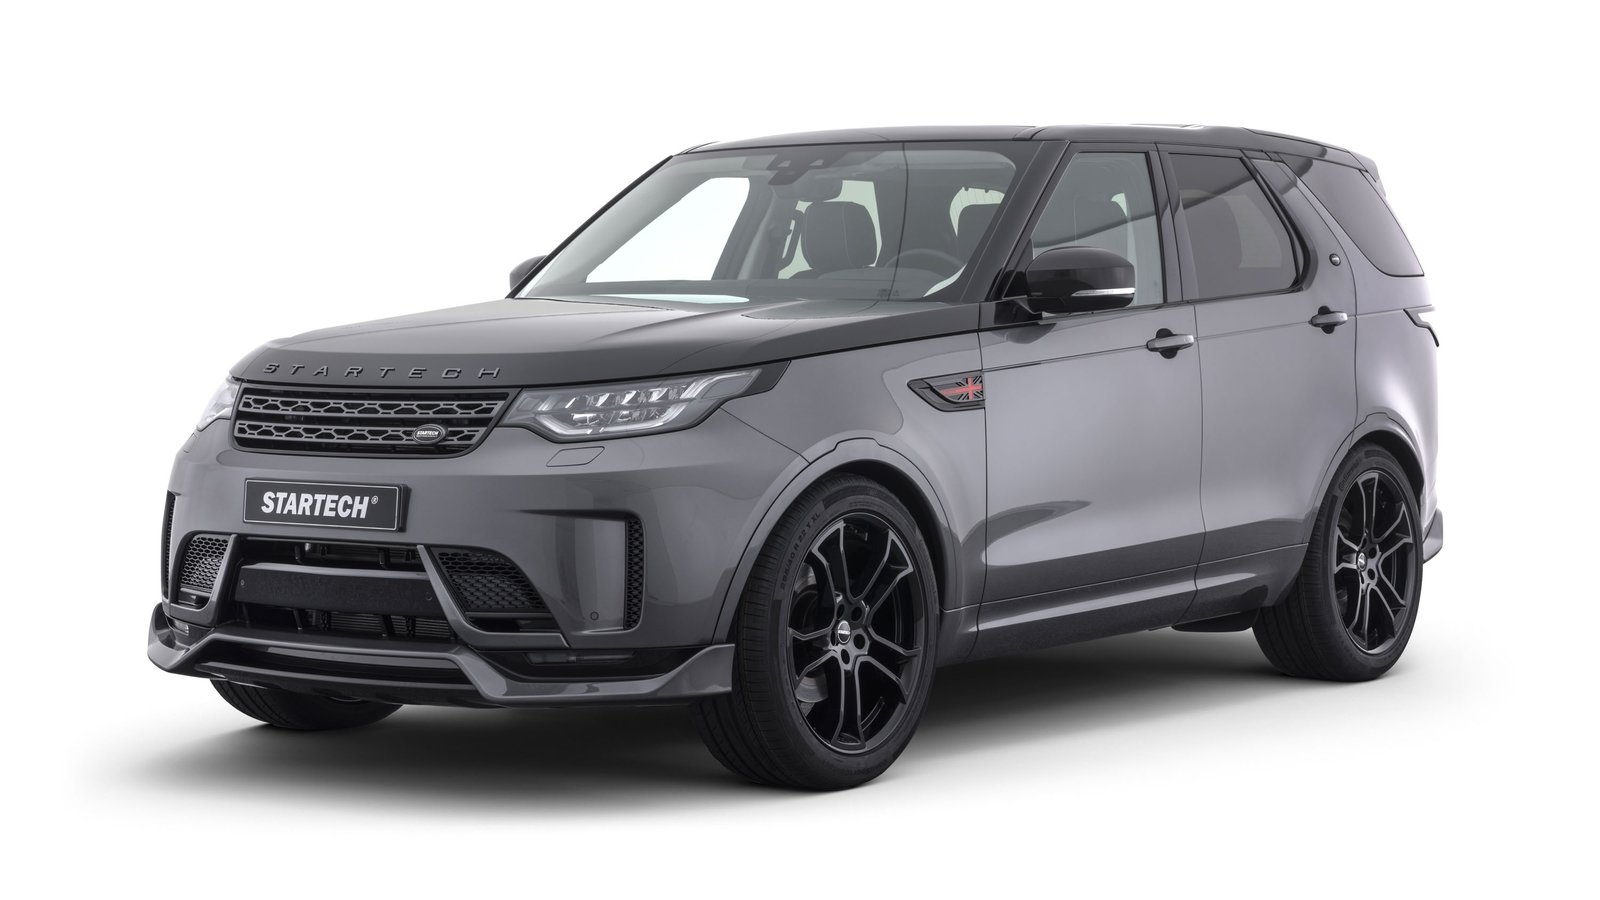 2017 land rover discovery by startech review top speed. Black Bedroom Furniture Sets. Home Design Ideas